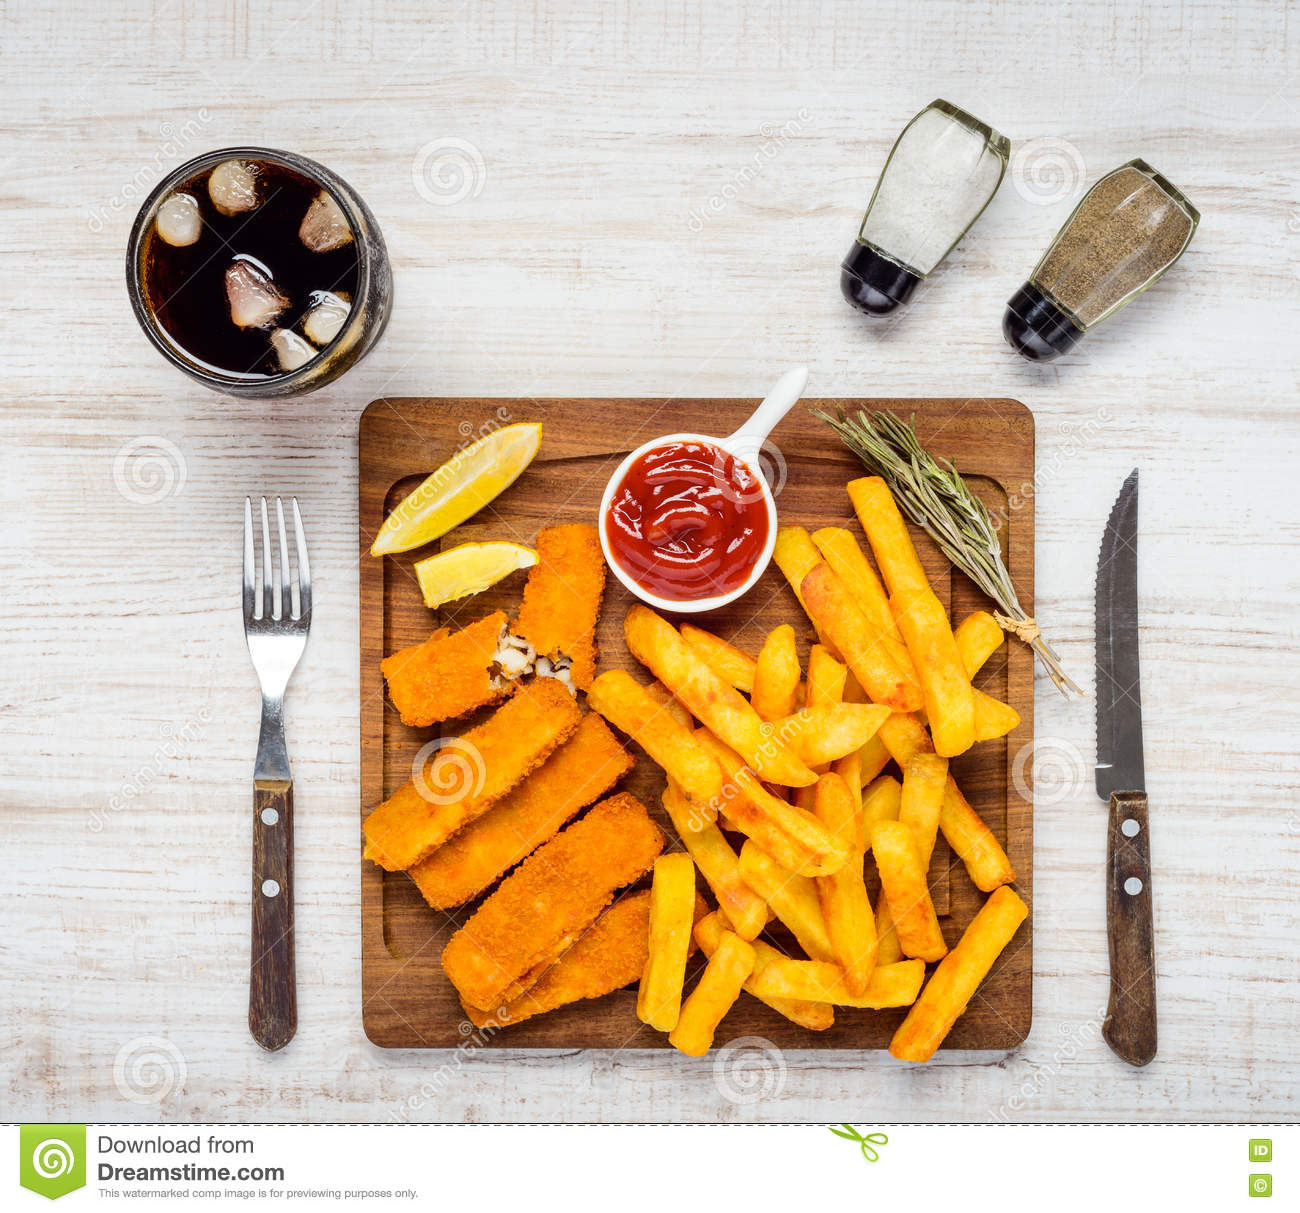 Fast food fish fingers cola and french fries stock photo for Fast food fish